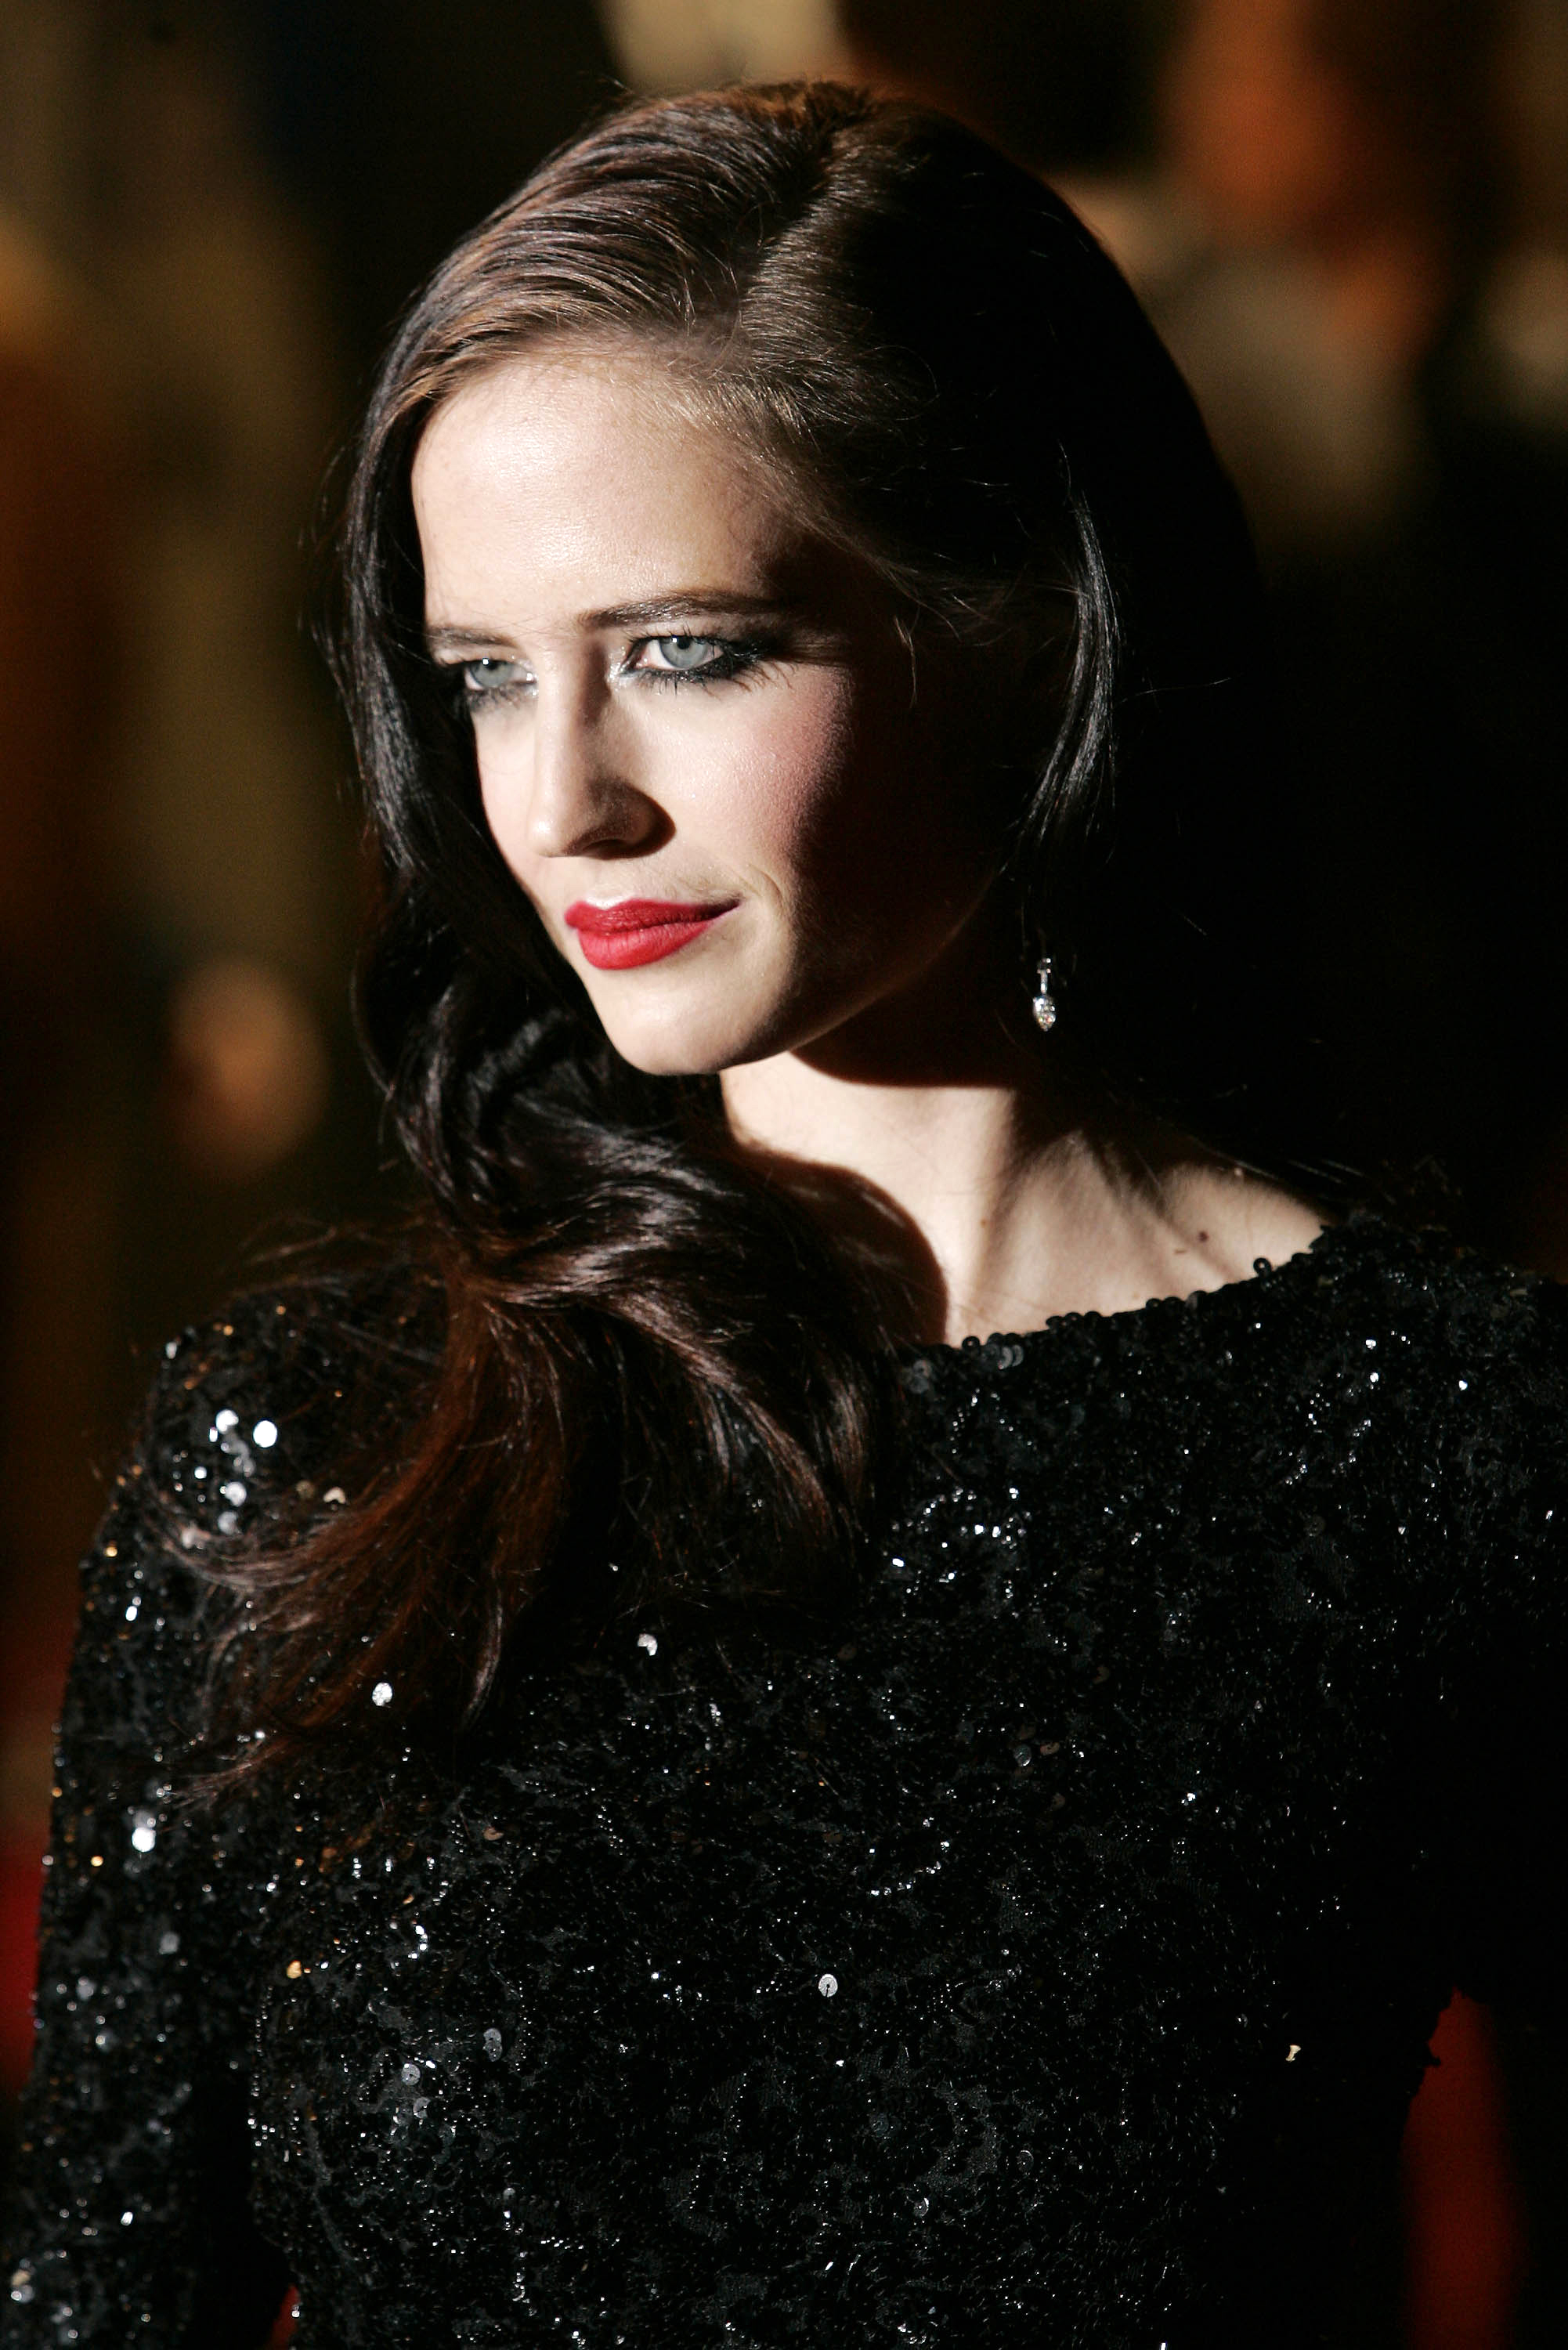 Wallpaper About Girls Eva Green Photo 225 Of 940 Pics Wallpaper Photo 178690